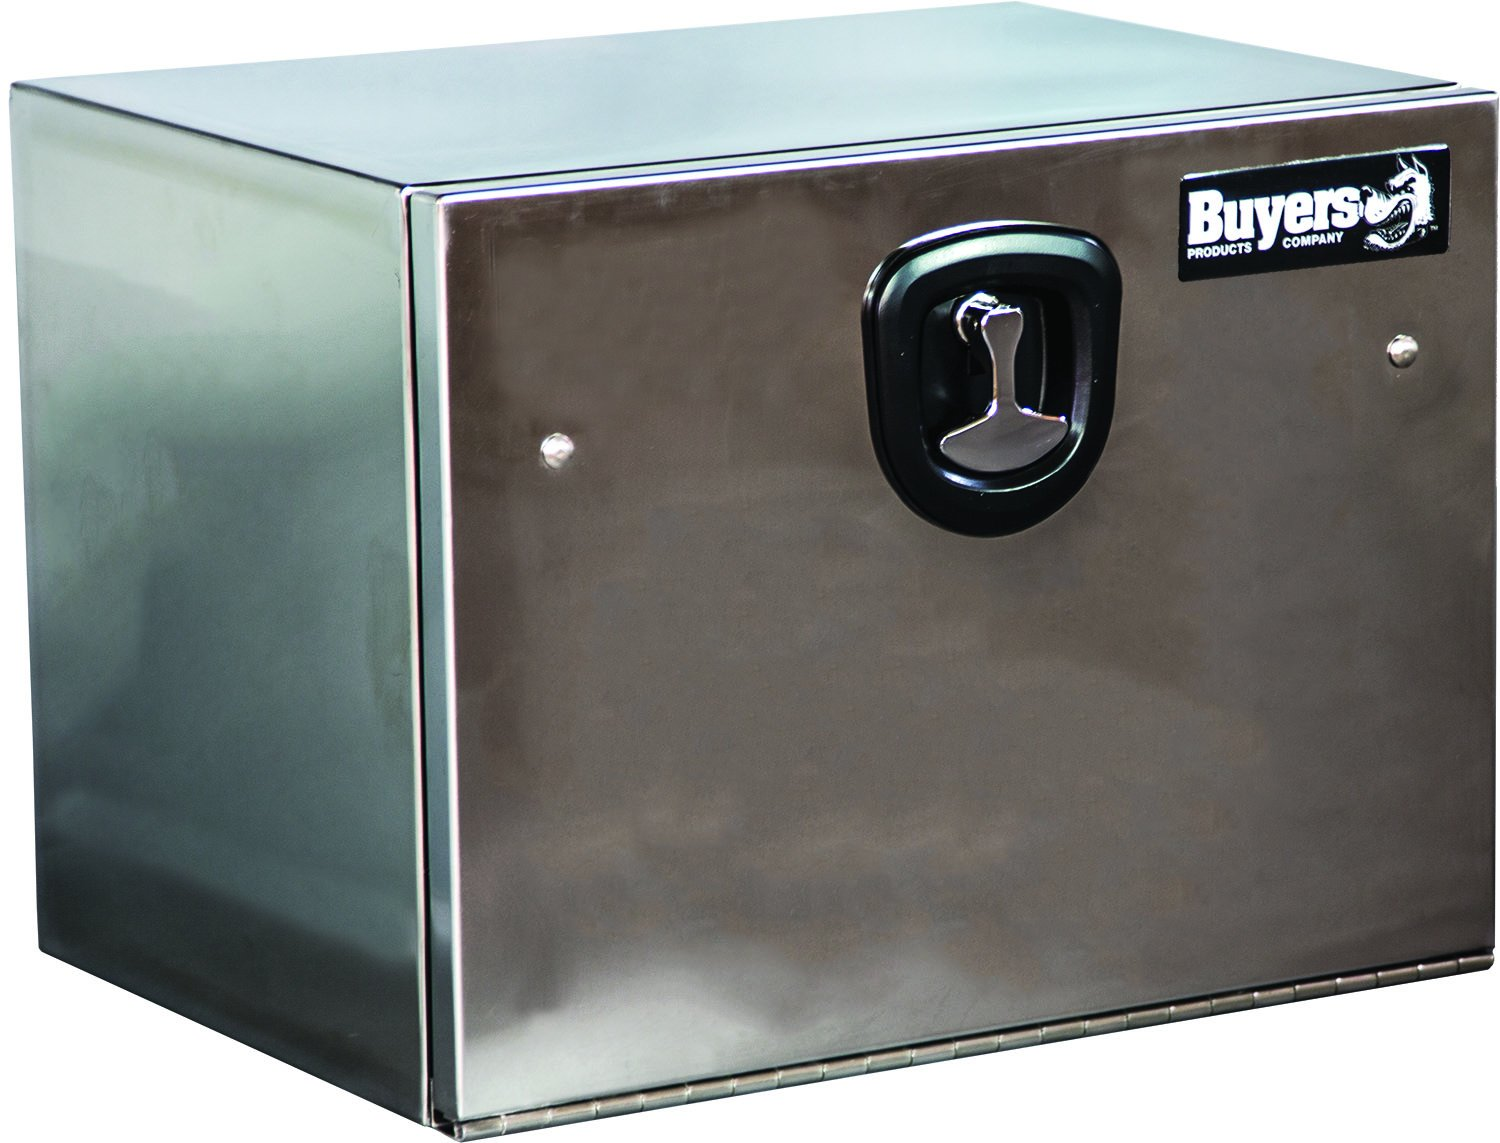 Buyers Products Polished Stainless Steel Underbody Truck Box w/ T-Handle Latch (18x18x30 Inch) by Buyers Products